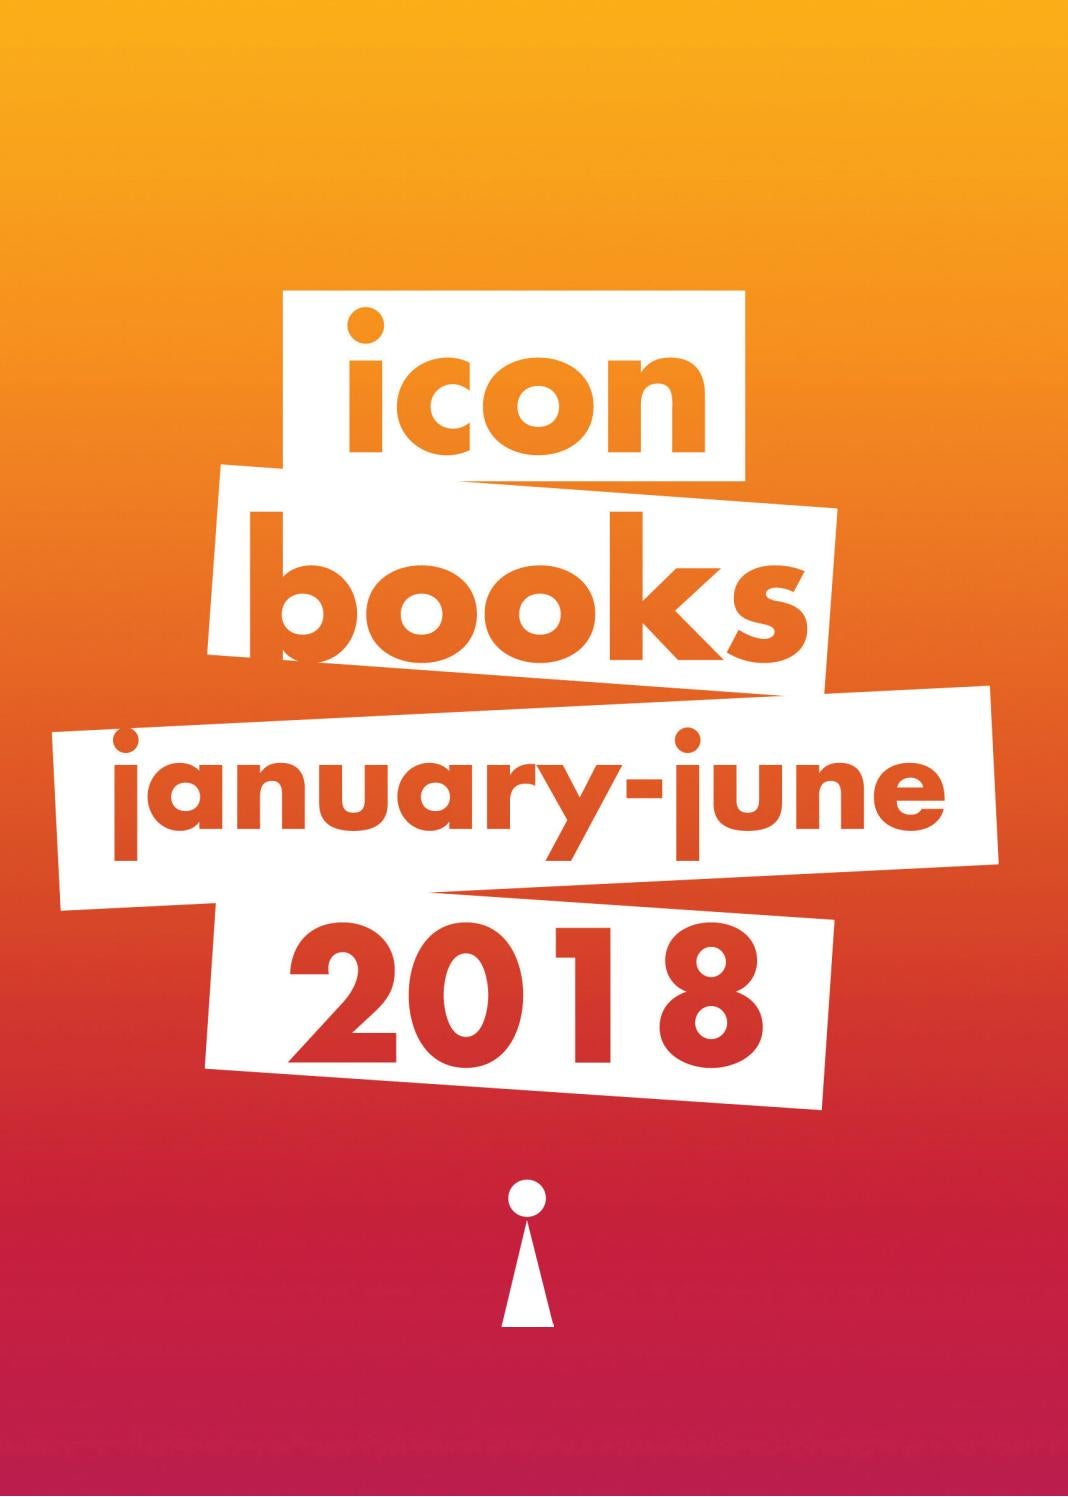 Icon books january june 2018 catalogue by icon books issuu fandeluxe Image collections